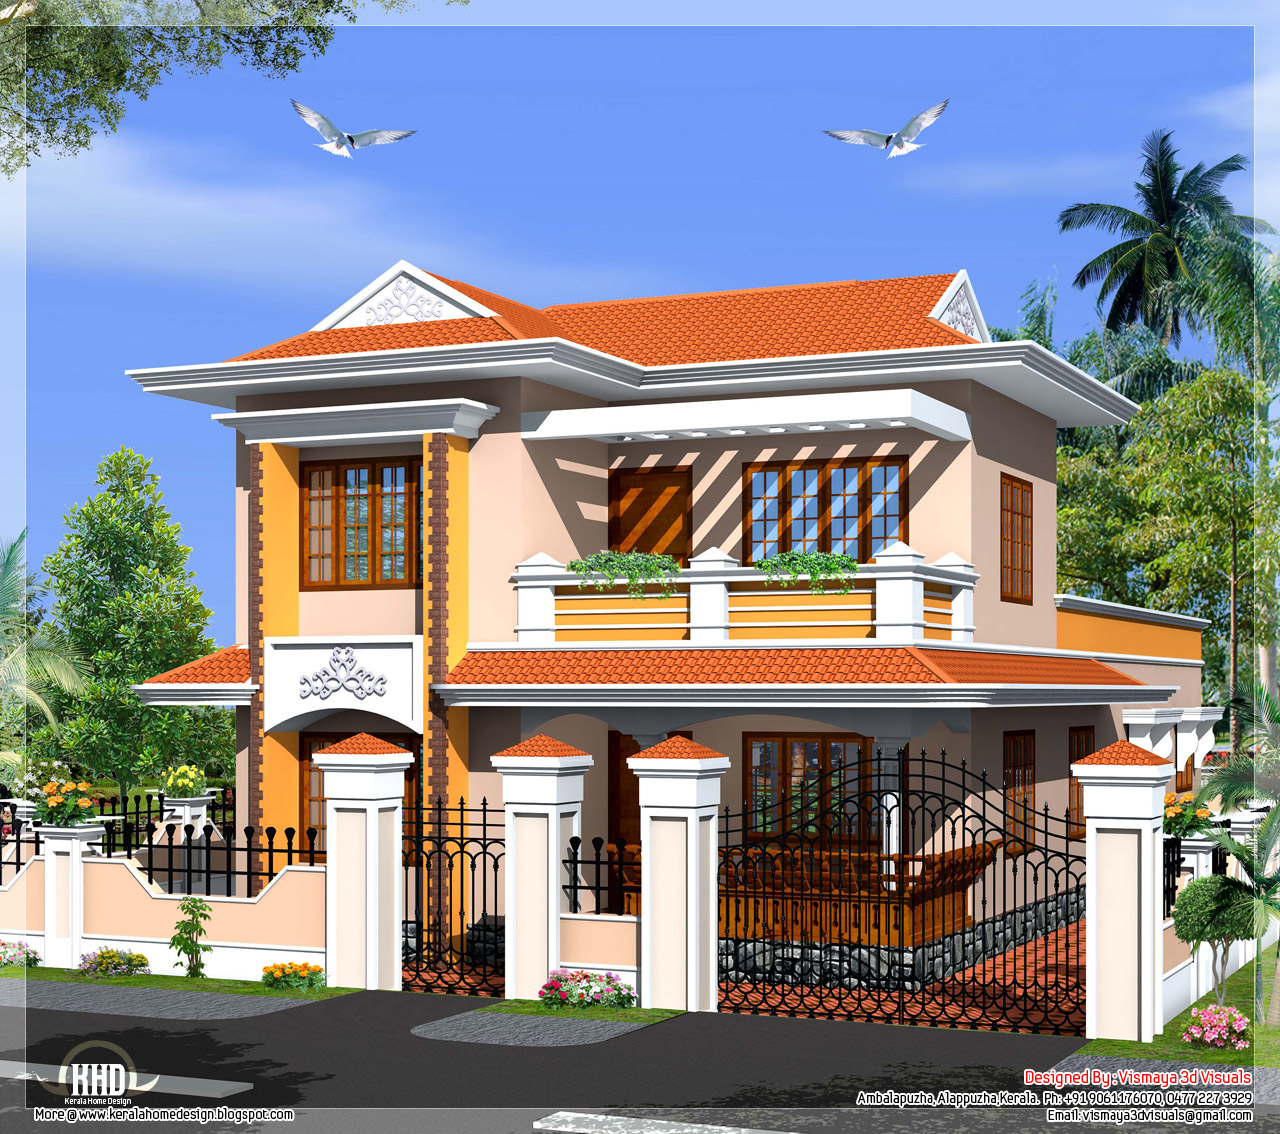 Kerala model villa in 2110 in square feet kerala home for Kerala model house photos with details